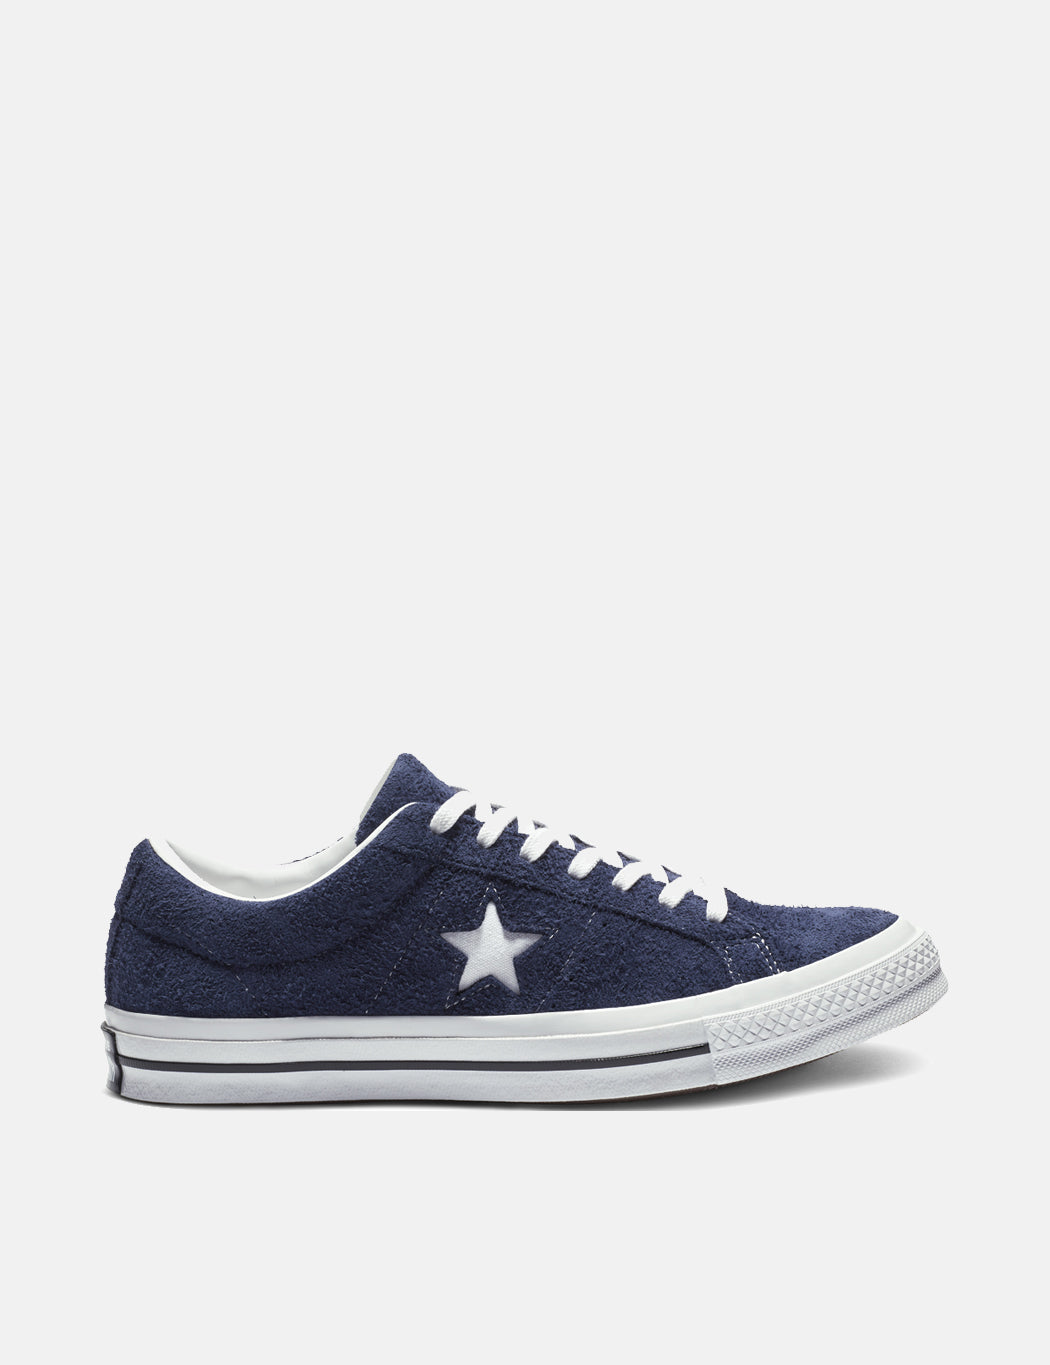 5470058eed90 Converse One Star Ox Low Suede (162576C) - Eclipse White